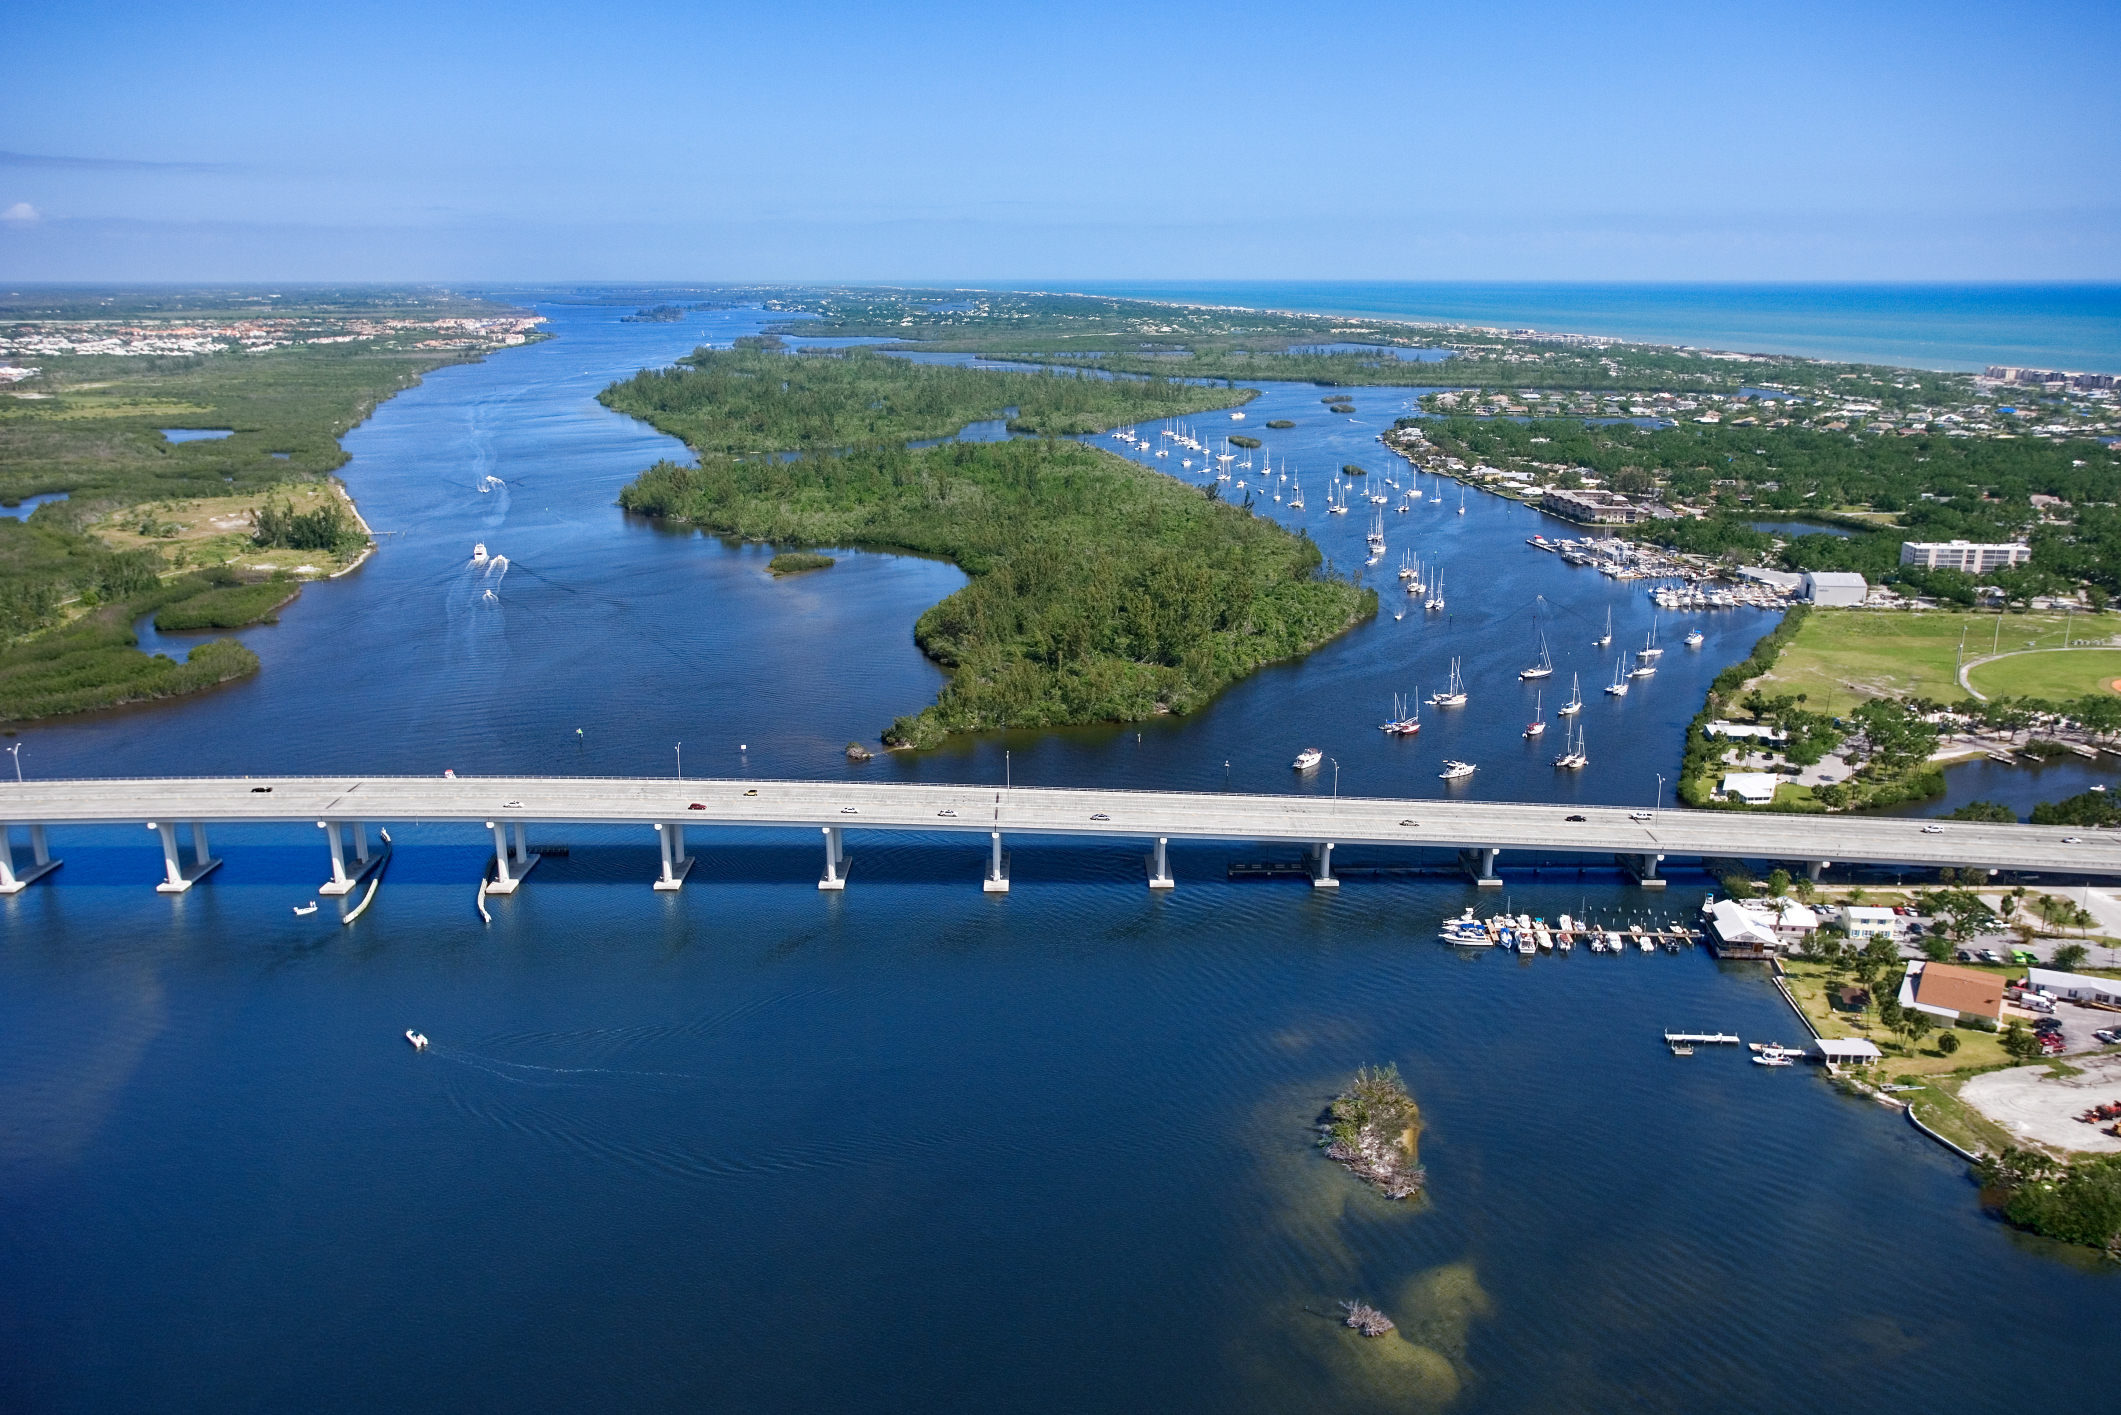 How to Rent a Houseboat to Cruise the Intracoastal Waterway | USA Today